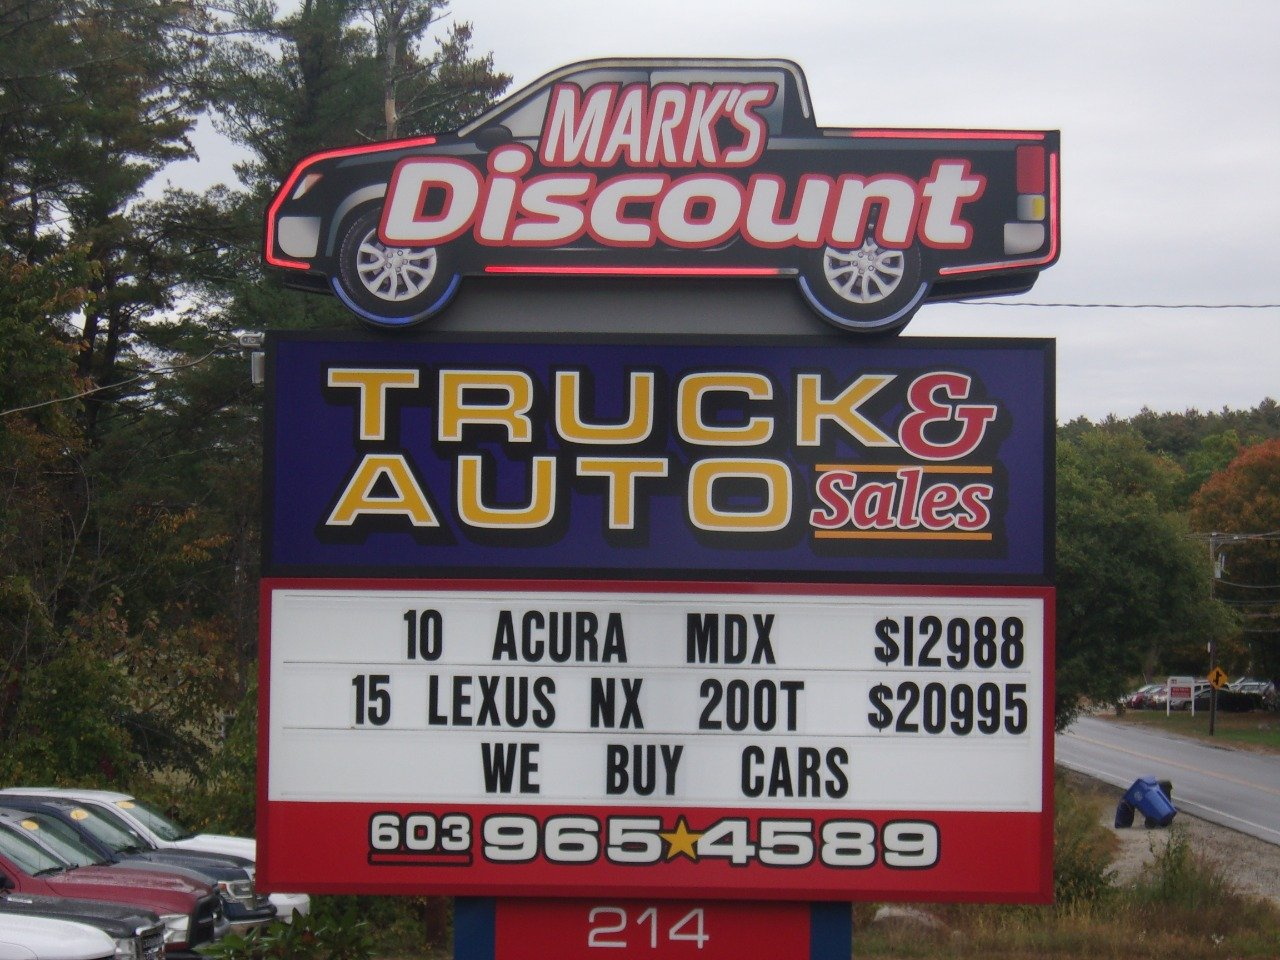 Mark's Discount Truck & Auto Sales